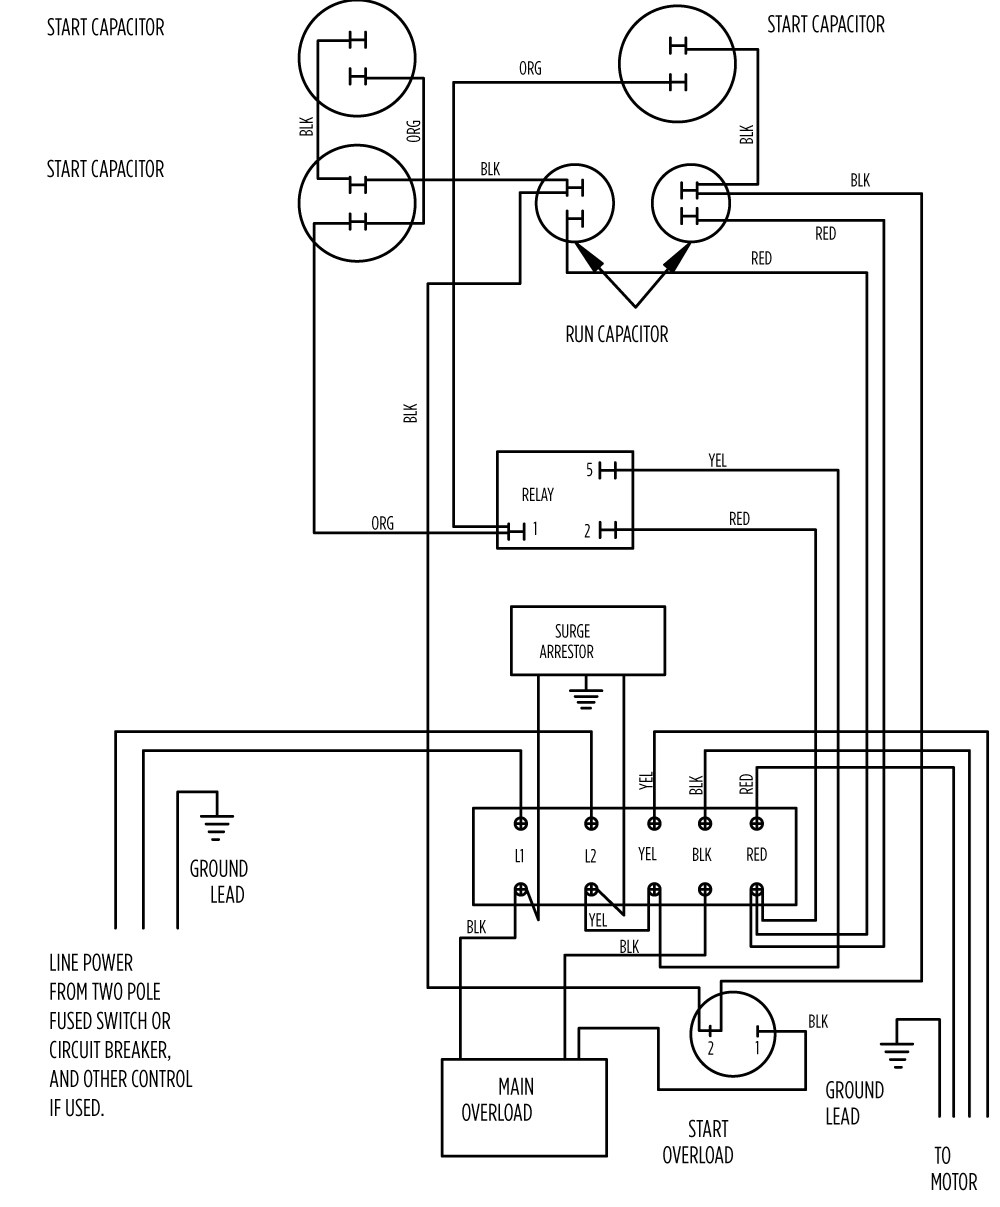 10 hp standard 282 202 9210 or 282 202 9230_aim gallery?format=jpg&quality=80 aim manual page 57 single phase motors and controls motor franklin electric motor wiring diagram at readyjetset.co